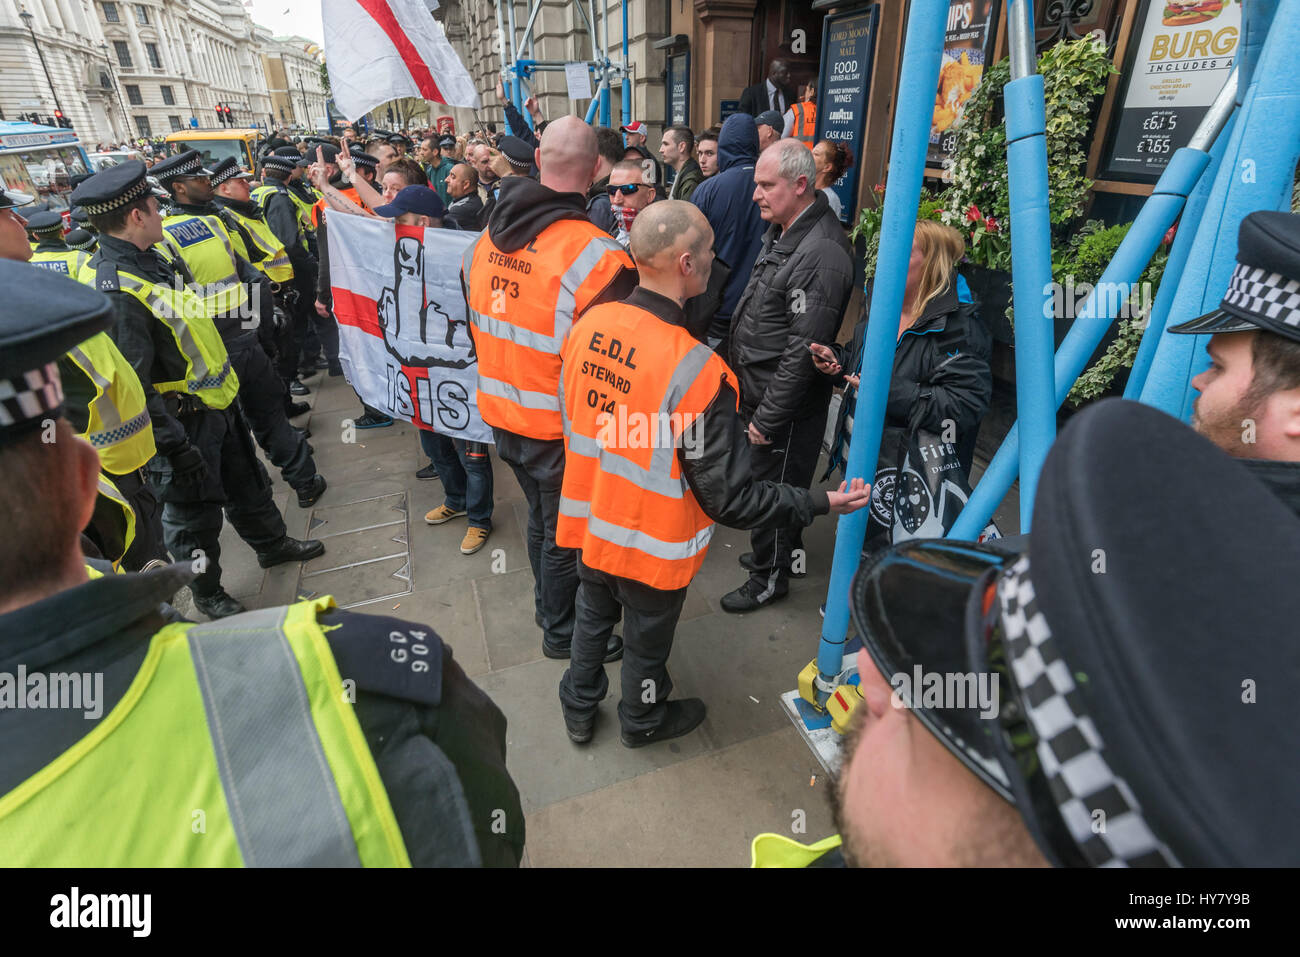 London, UK. 1st Apr, 2017. London, UK. 1st April 2017. Marches and rallies by Britain First and the EDL (English - Stock Image